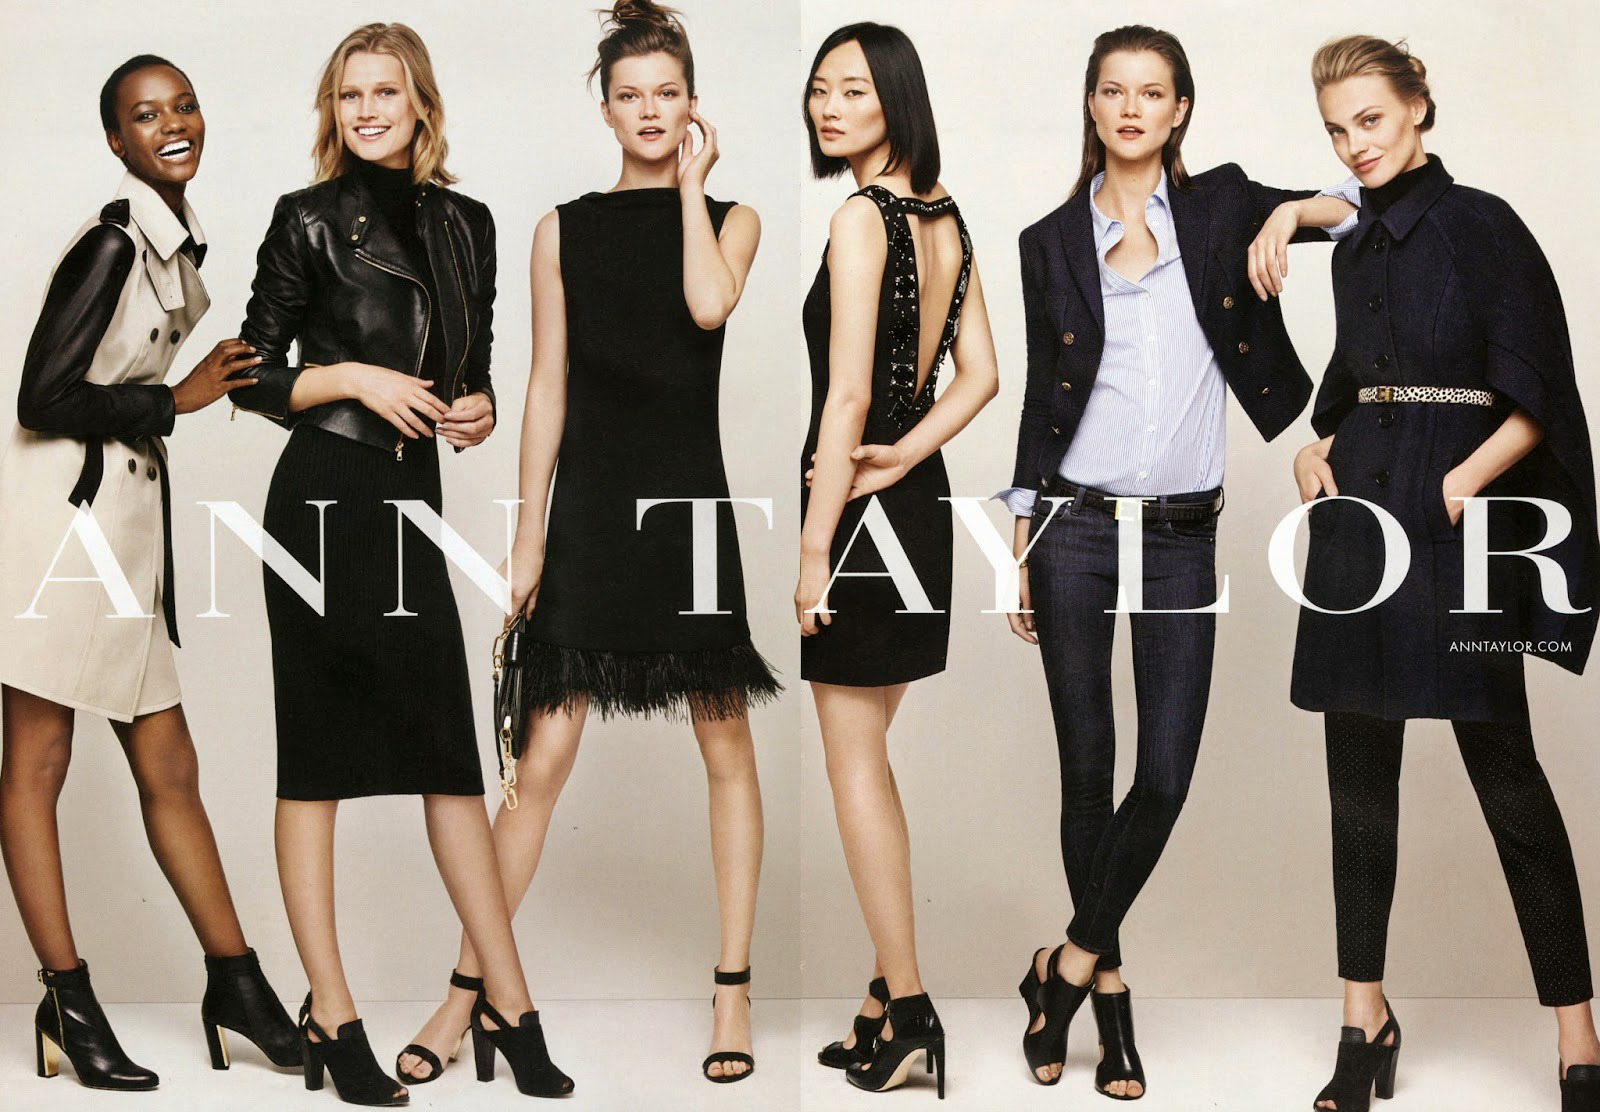 ANN TAYLOR: Flattering dresses and skirts, perfect-fitting pants, beautiful blouses, and more. Feminine. Modern. Thoughtful. Elegant